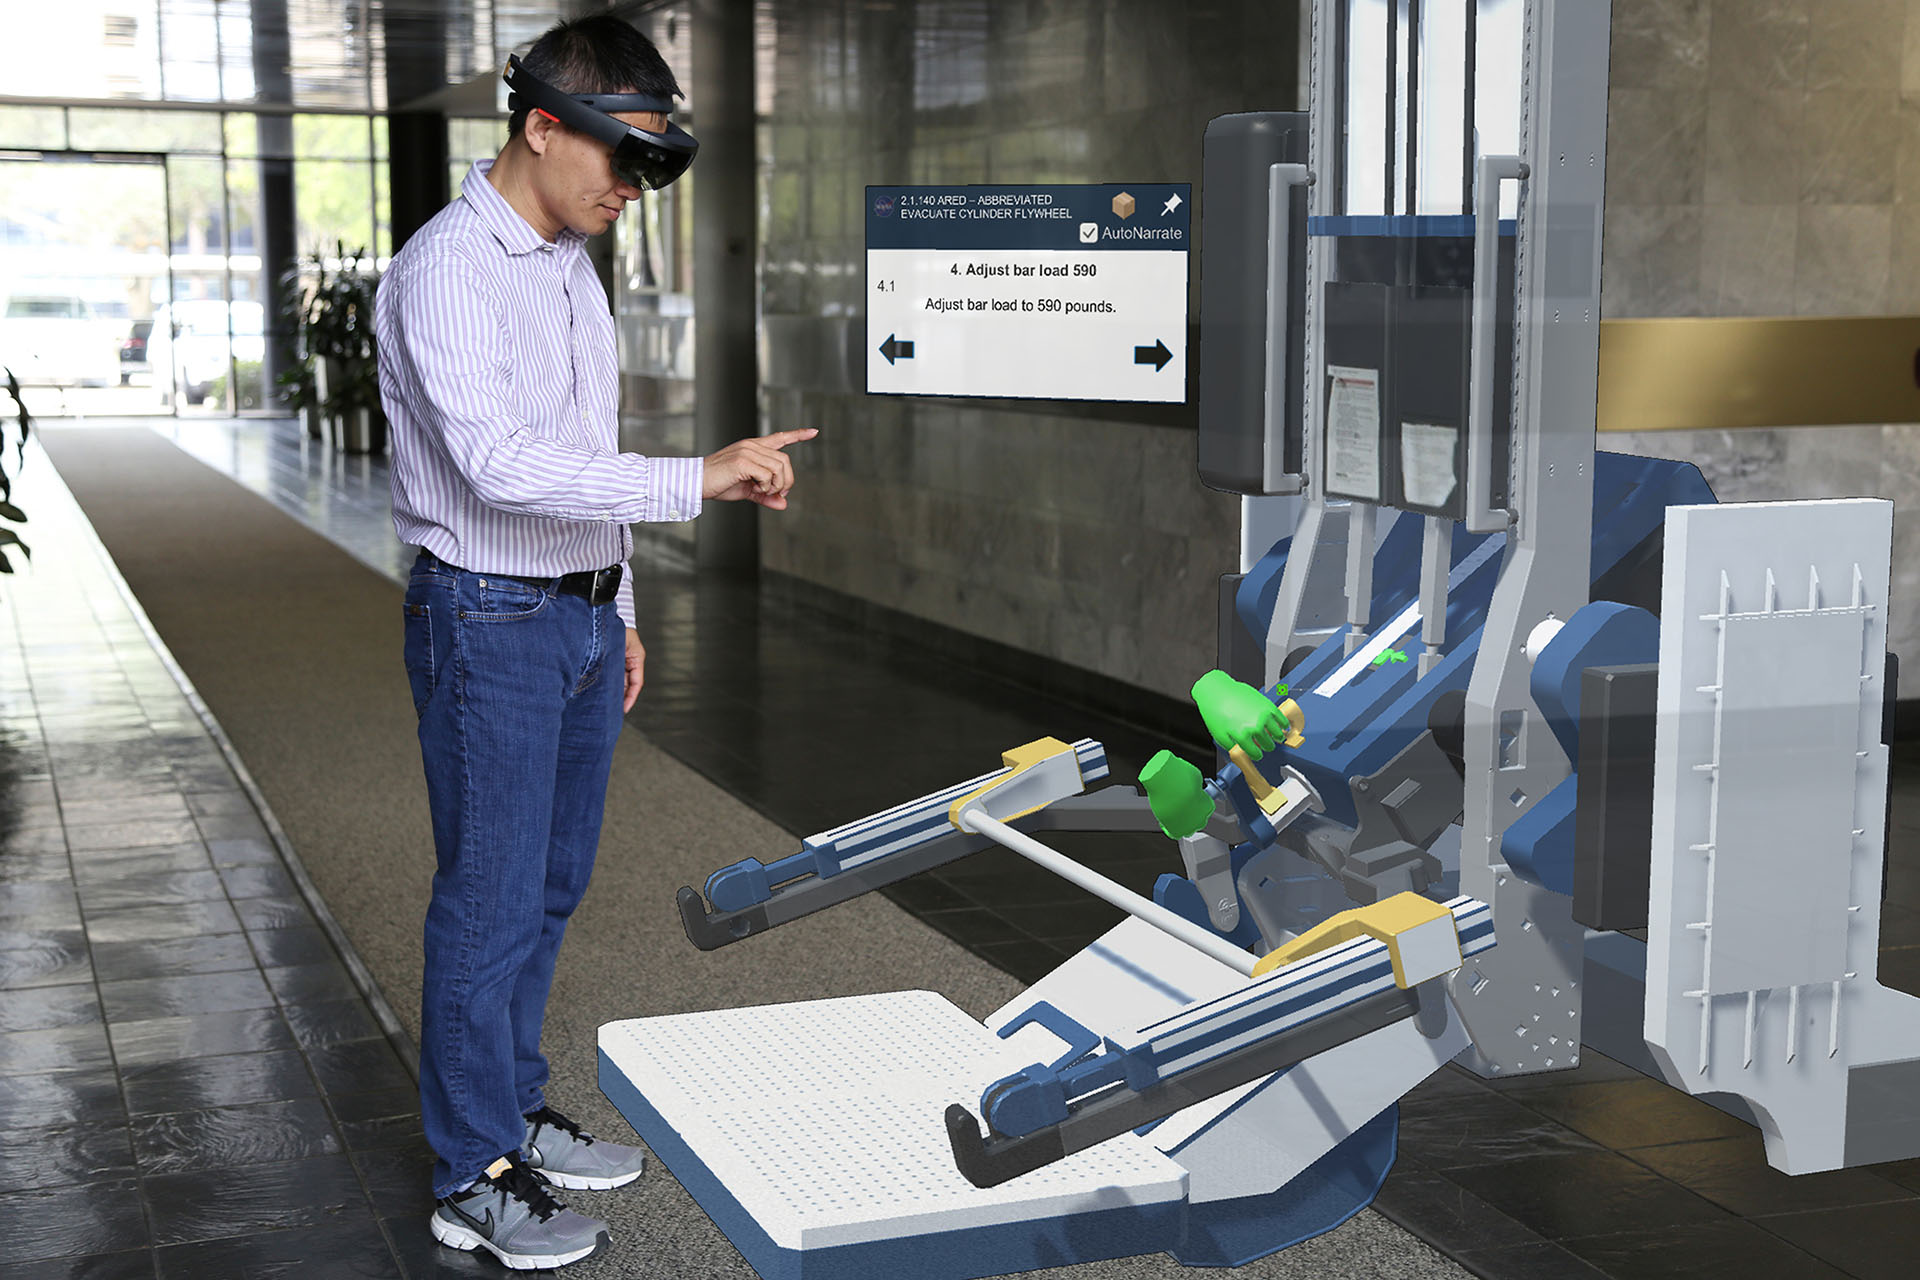 HoloLens - Advanced Resistive Exercise Device (ARED) Maintenance